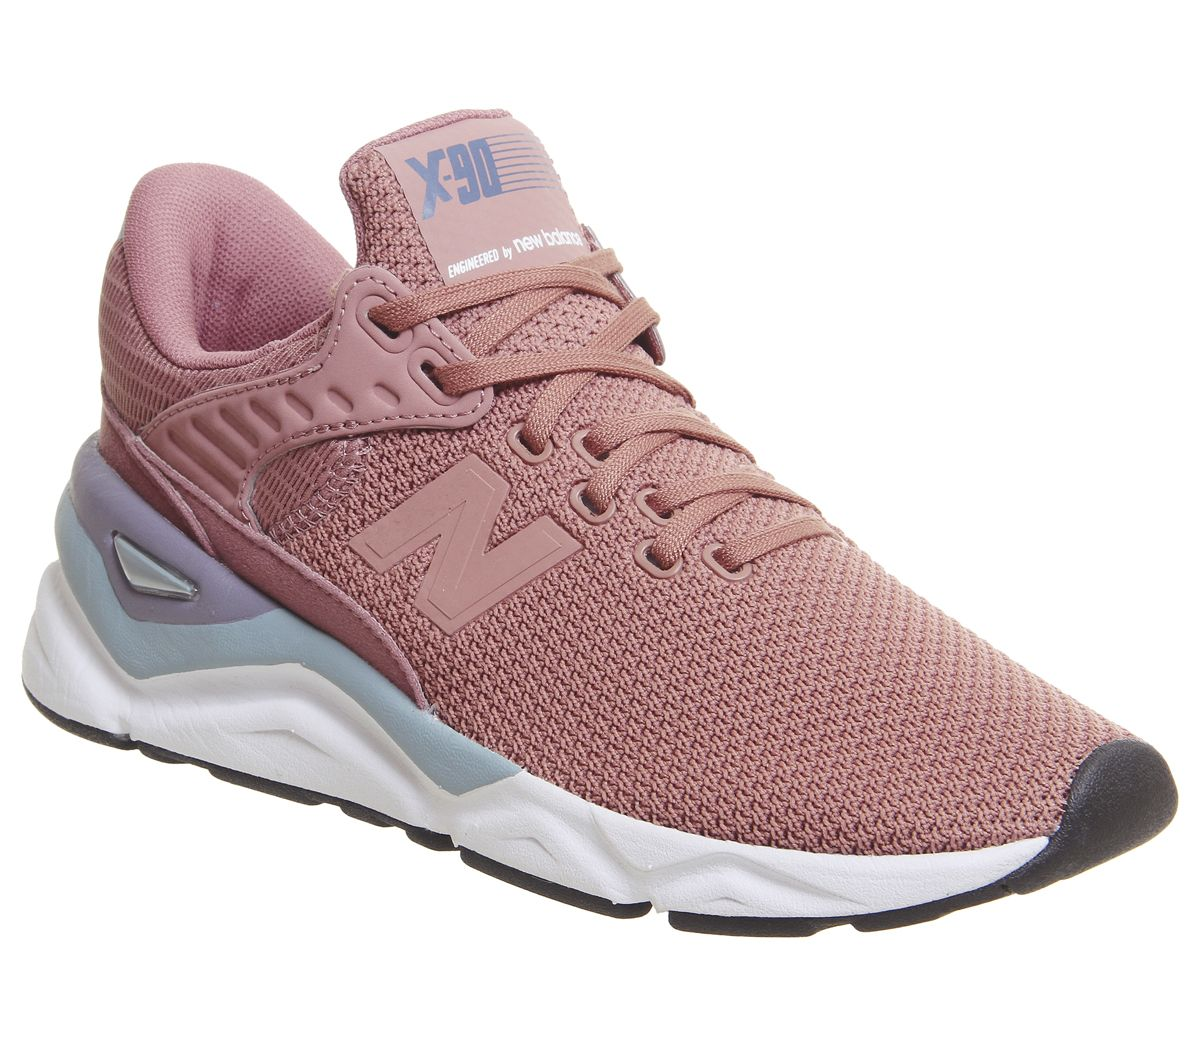 44fc8dc09c0a New Balance X90 Trainers Dark Oxide Exclusive - Hers trainers